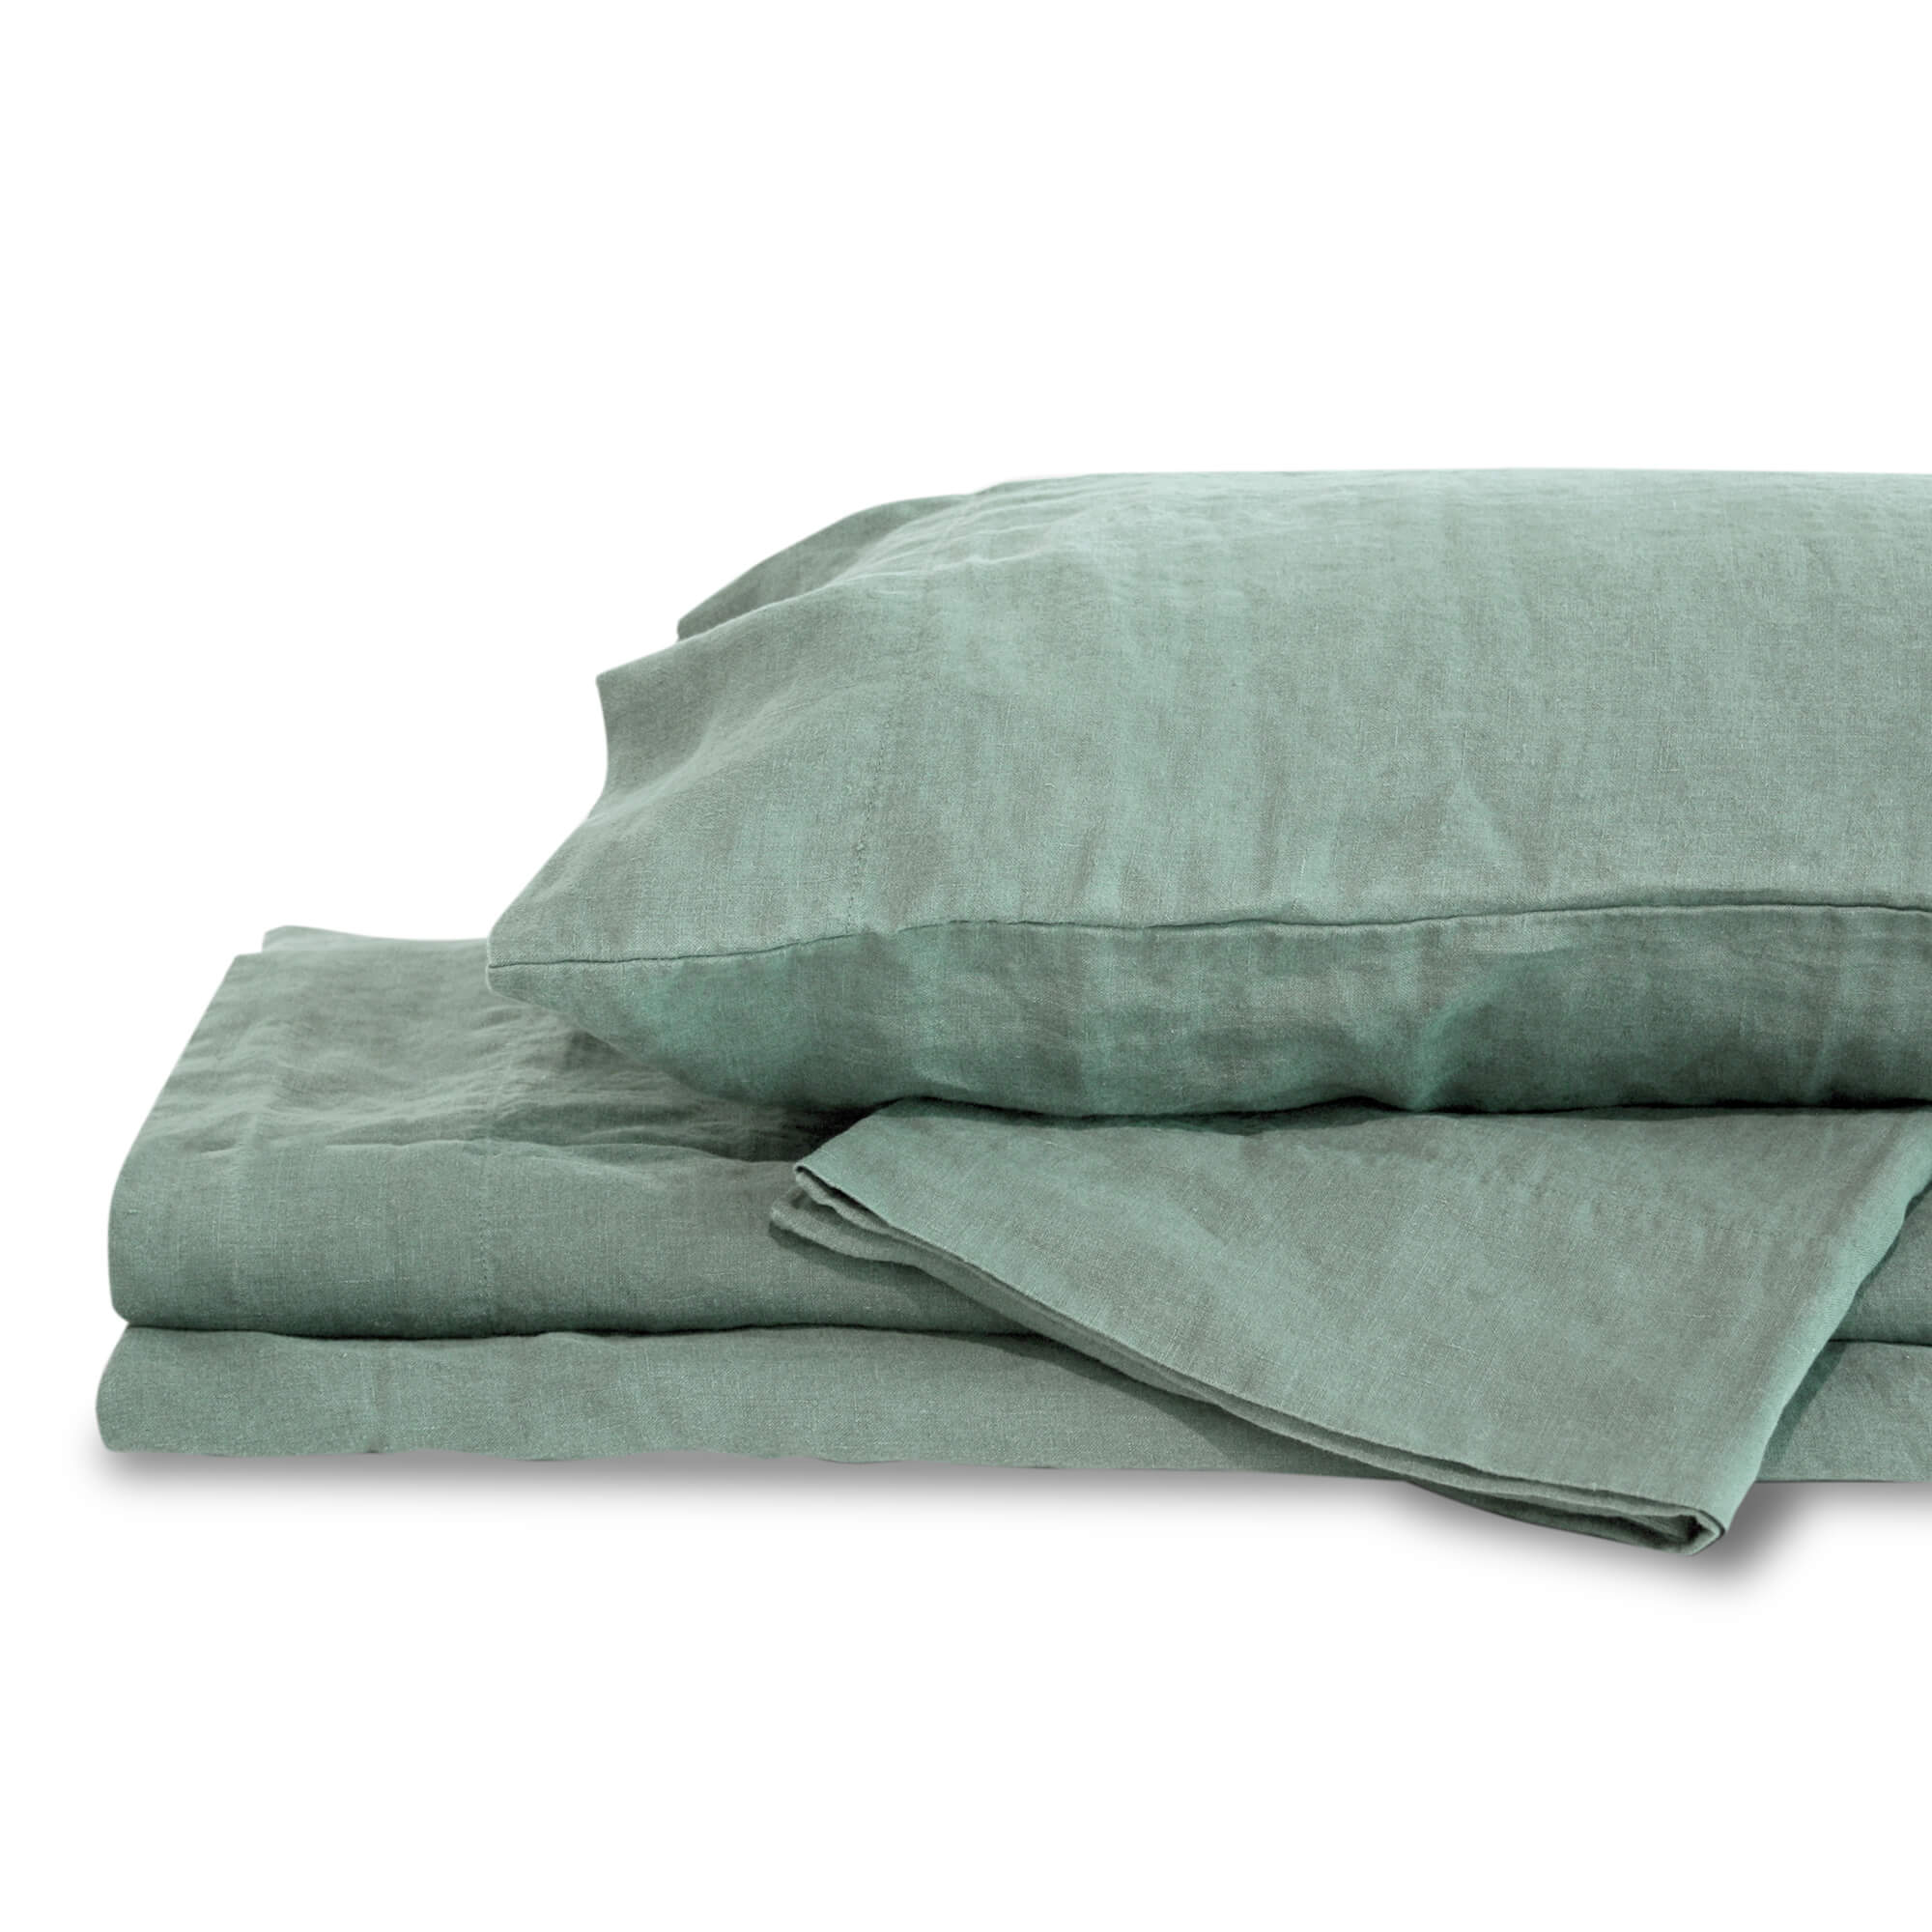 Delilah Home 100% Hemp Bed Sheets Jungle Pillows